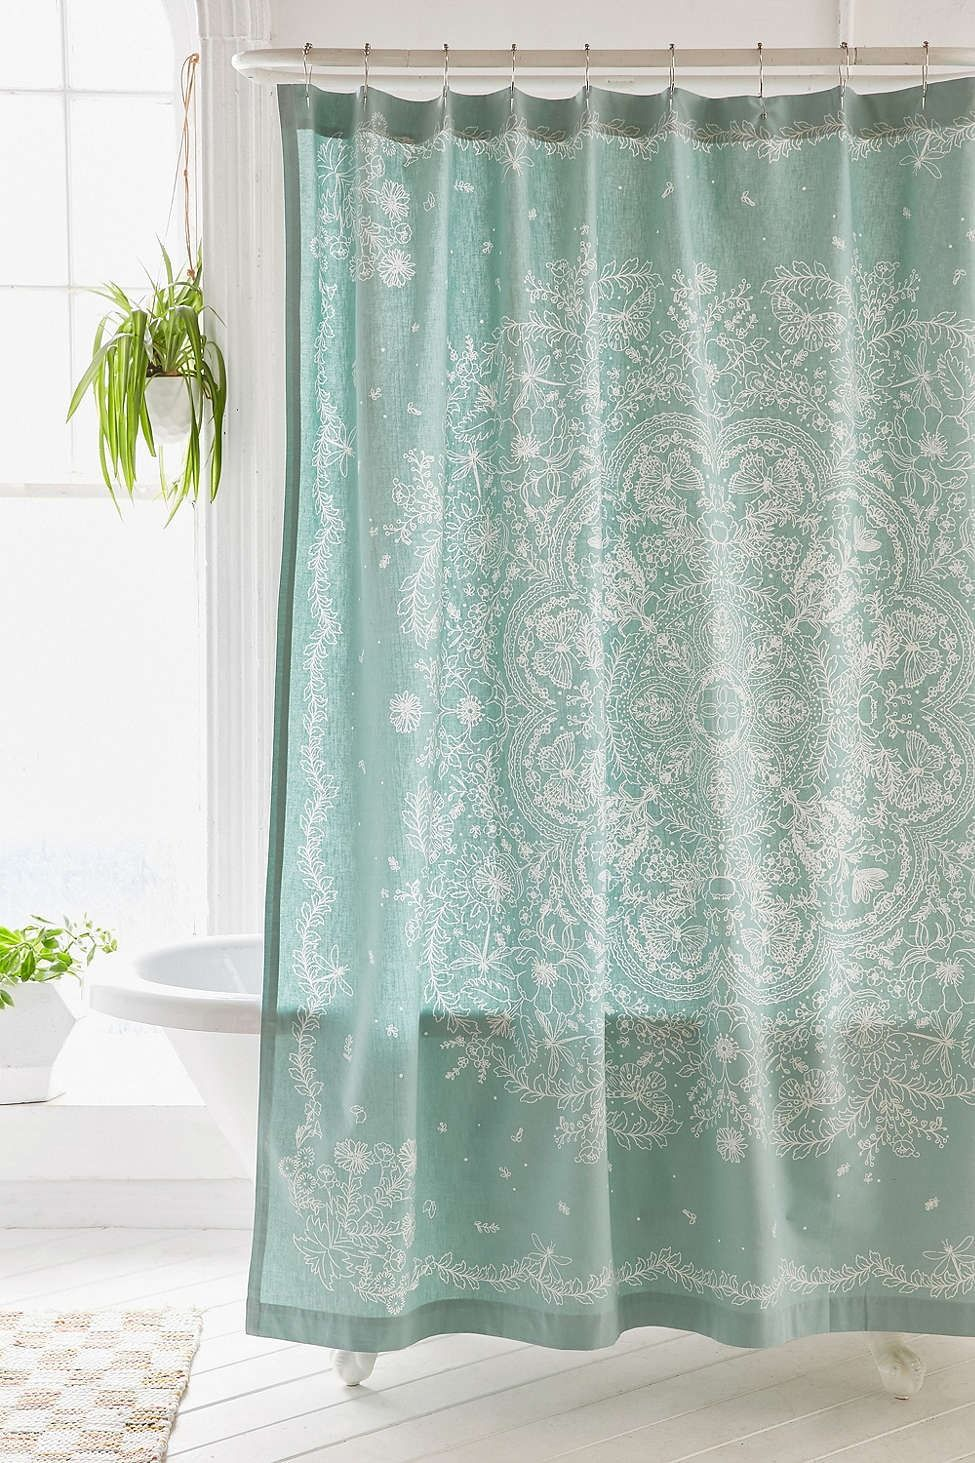 Shower Curtain Liner Lace Shower Curtains Shabby Chic Bathroom